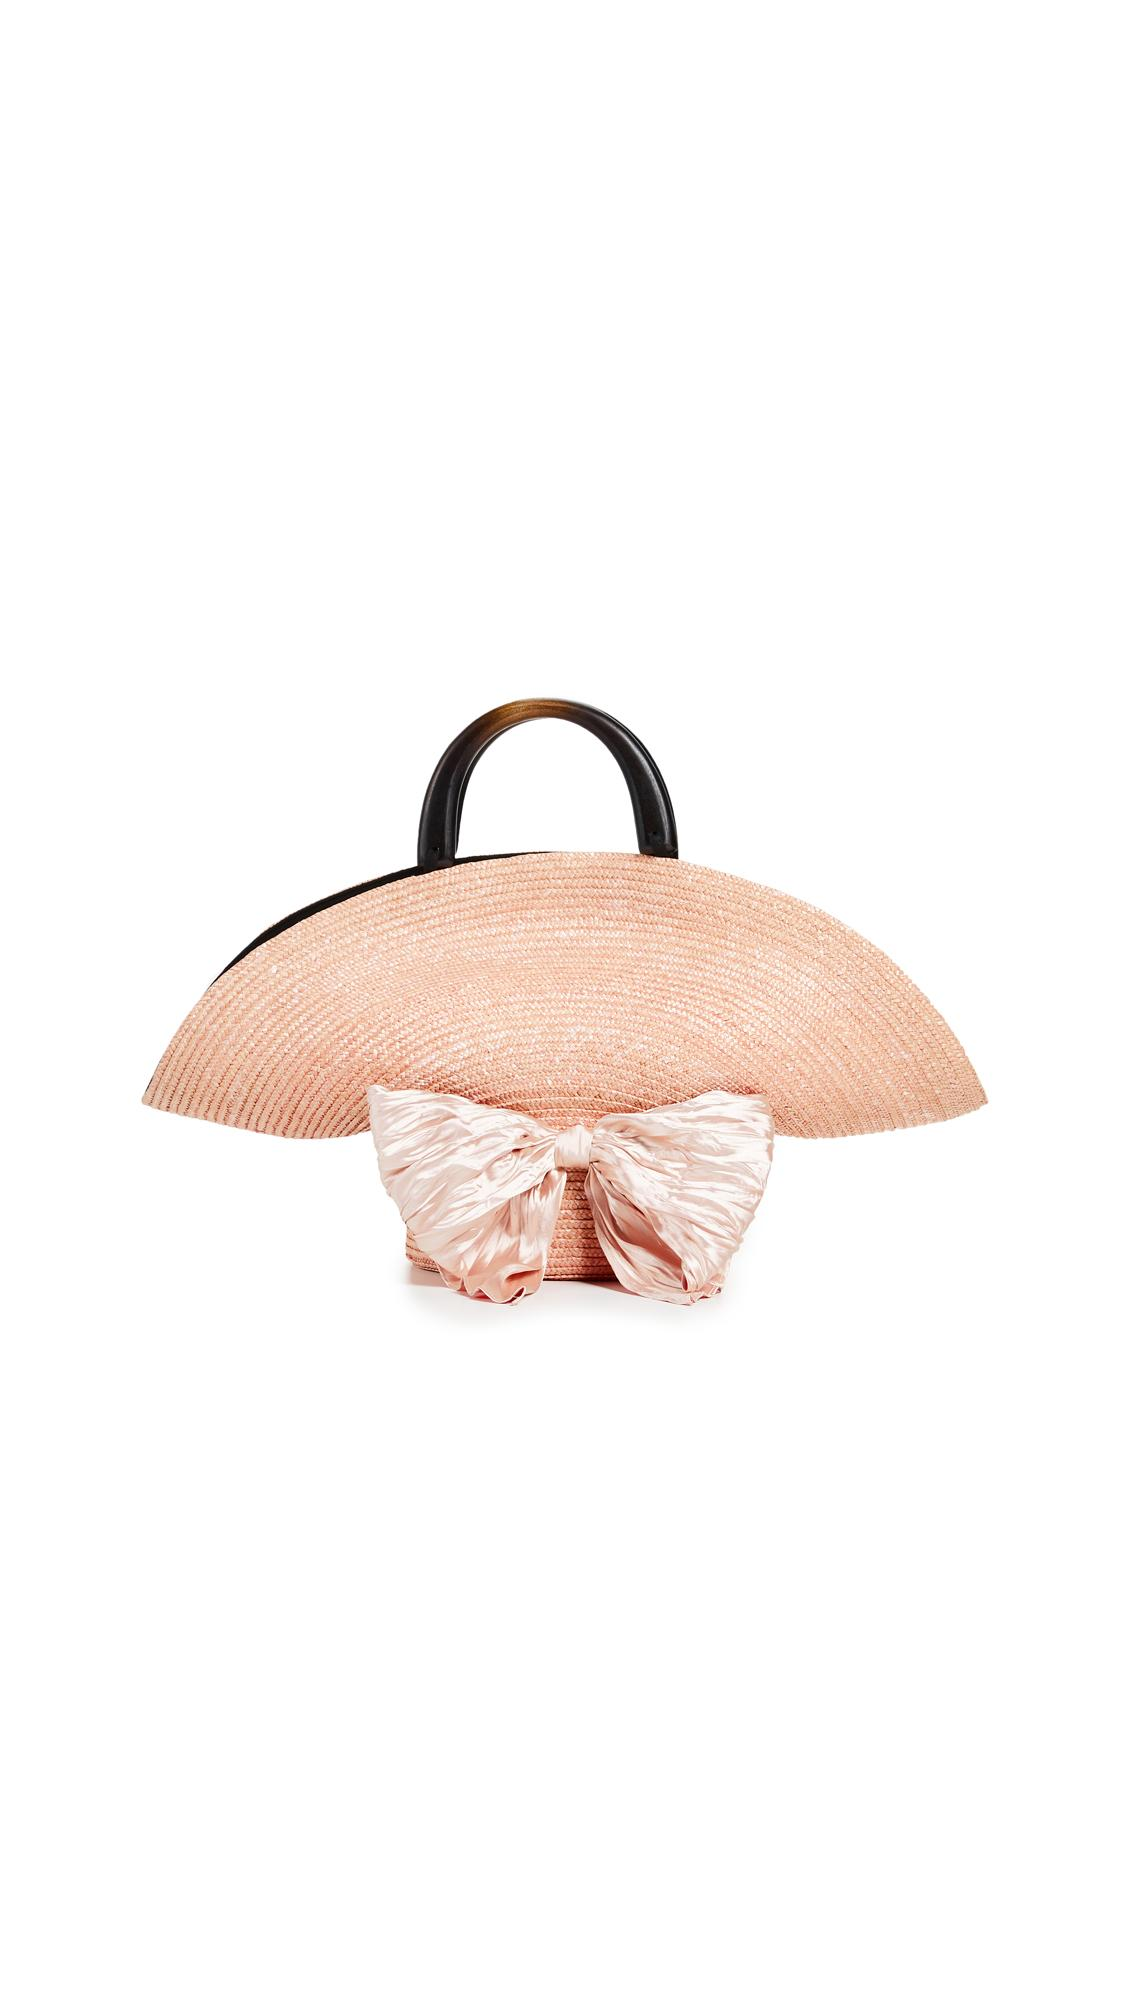 Eugenia Kim Flavia Tote Bag In Peach